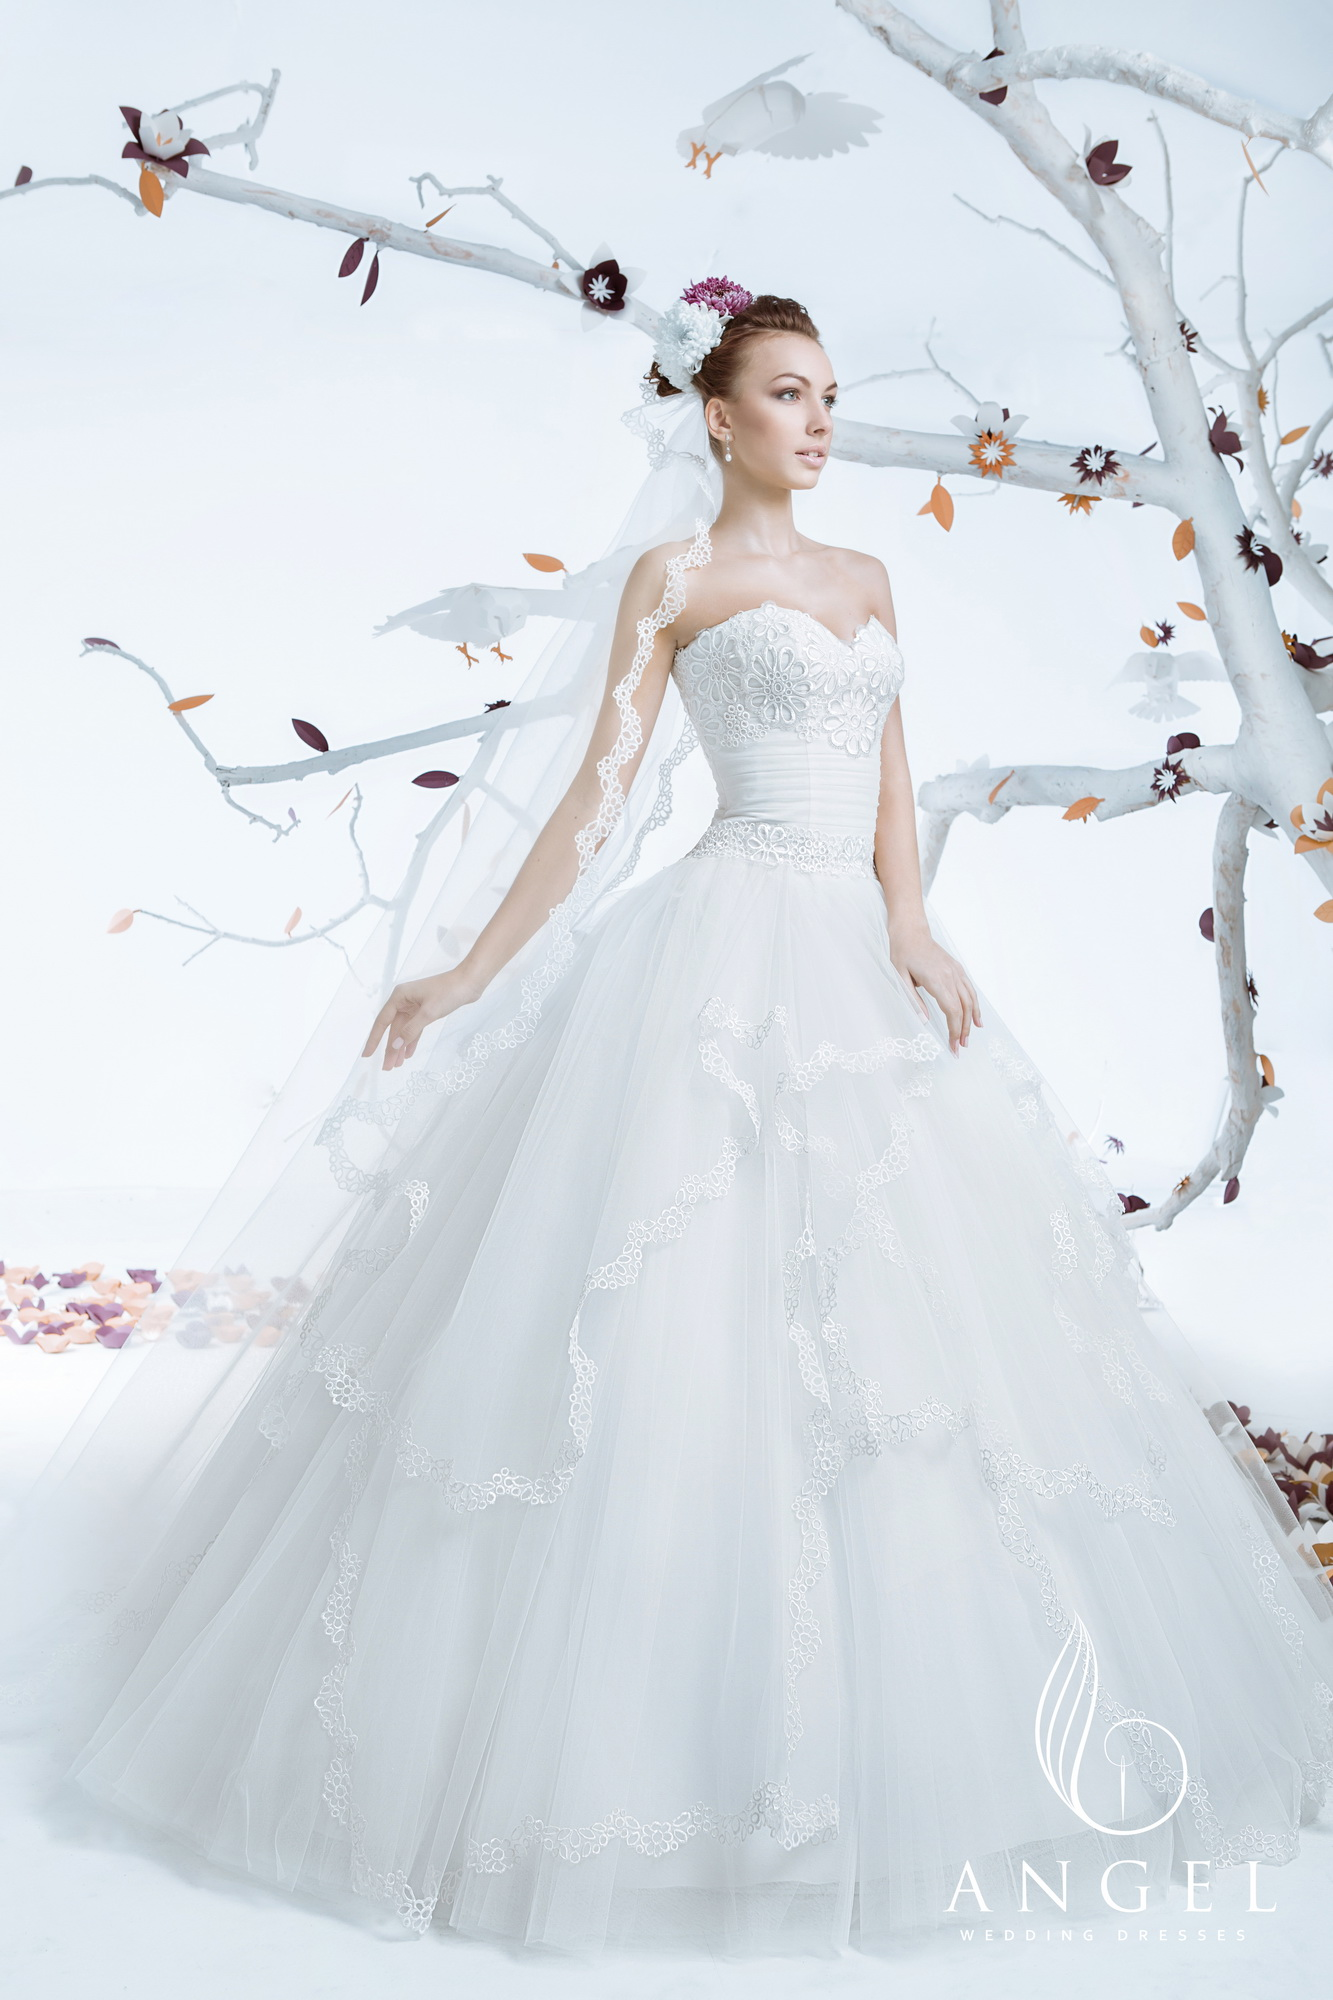 https://angel-novias.com/images/stories/virtuemart/product/Favor 200$.jpg